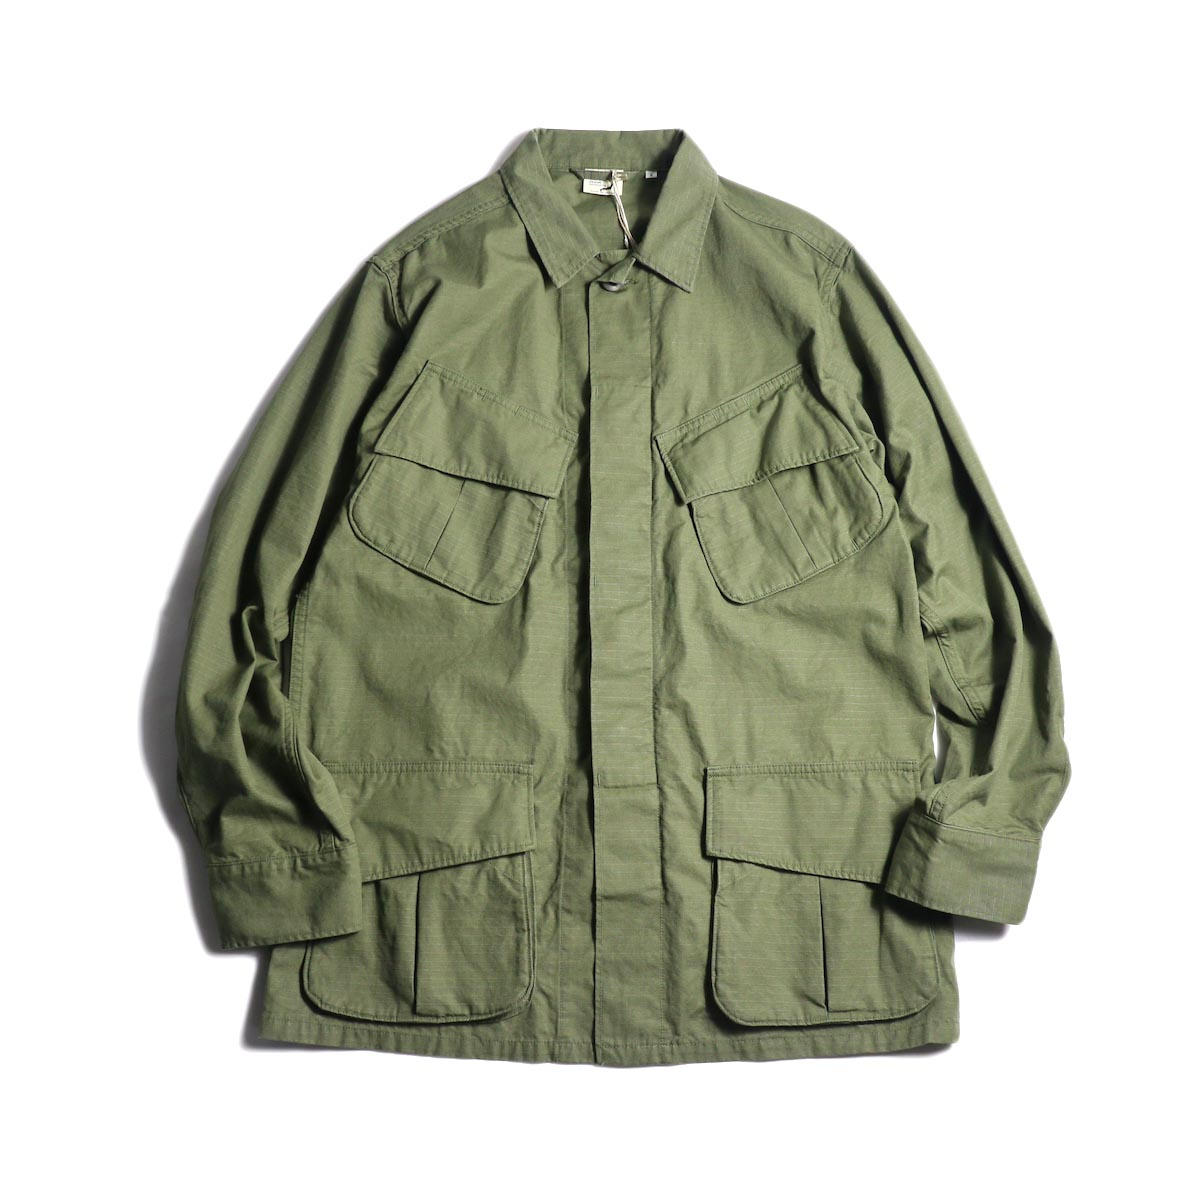 orSlow / US ARMY TROPICAL JACKET